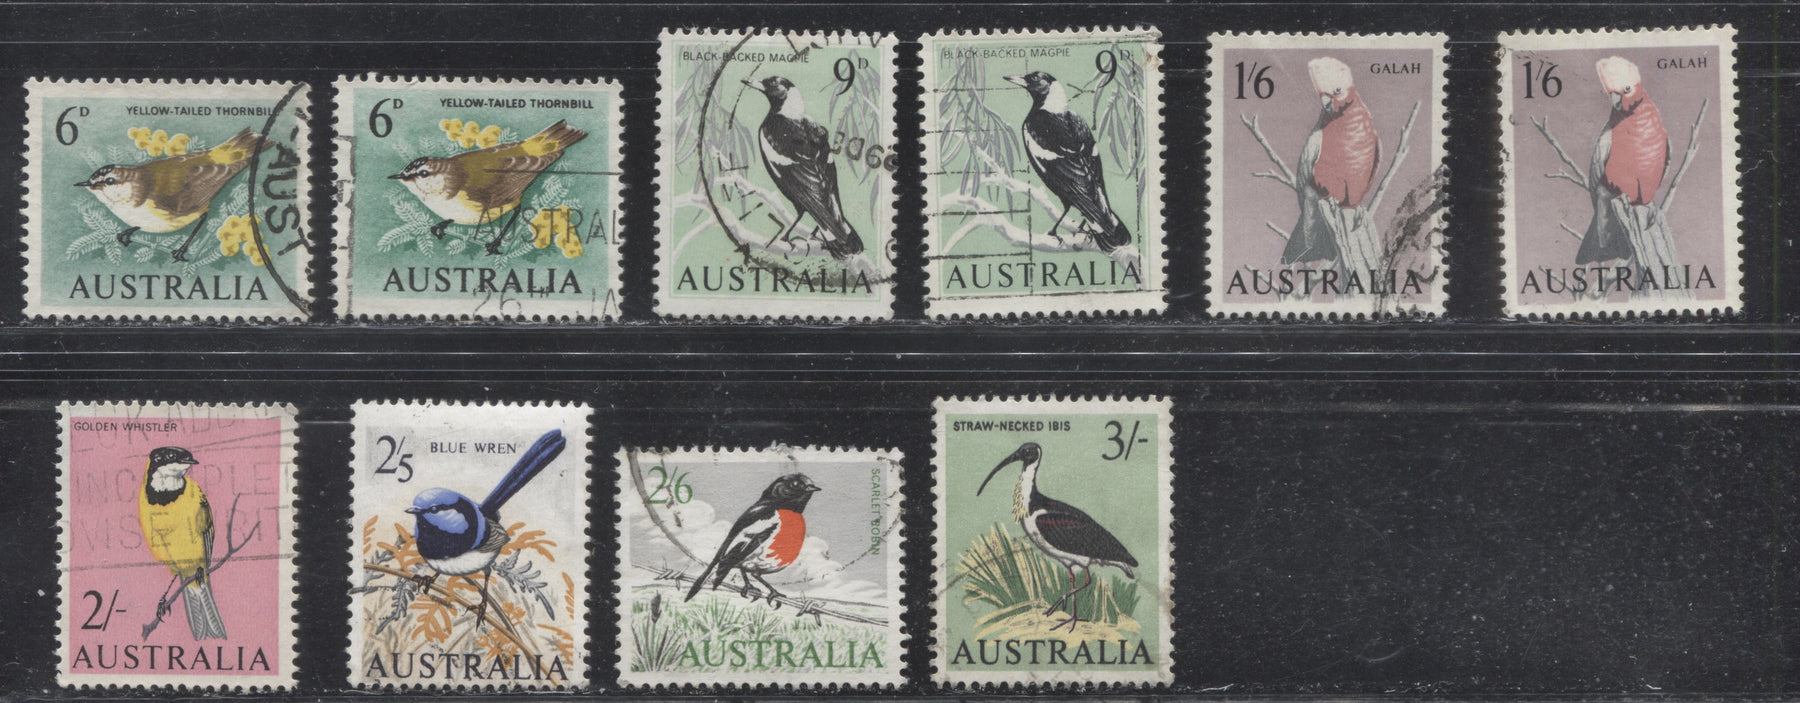 Australia #367-373 (SG#363-369) 6d to 3/- Birds 1963-1966 Definitive Issue, A Specialized Lot of 10 VF Used Stamps